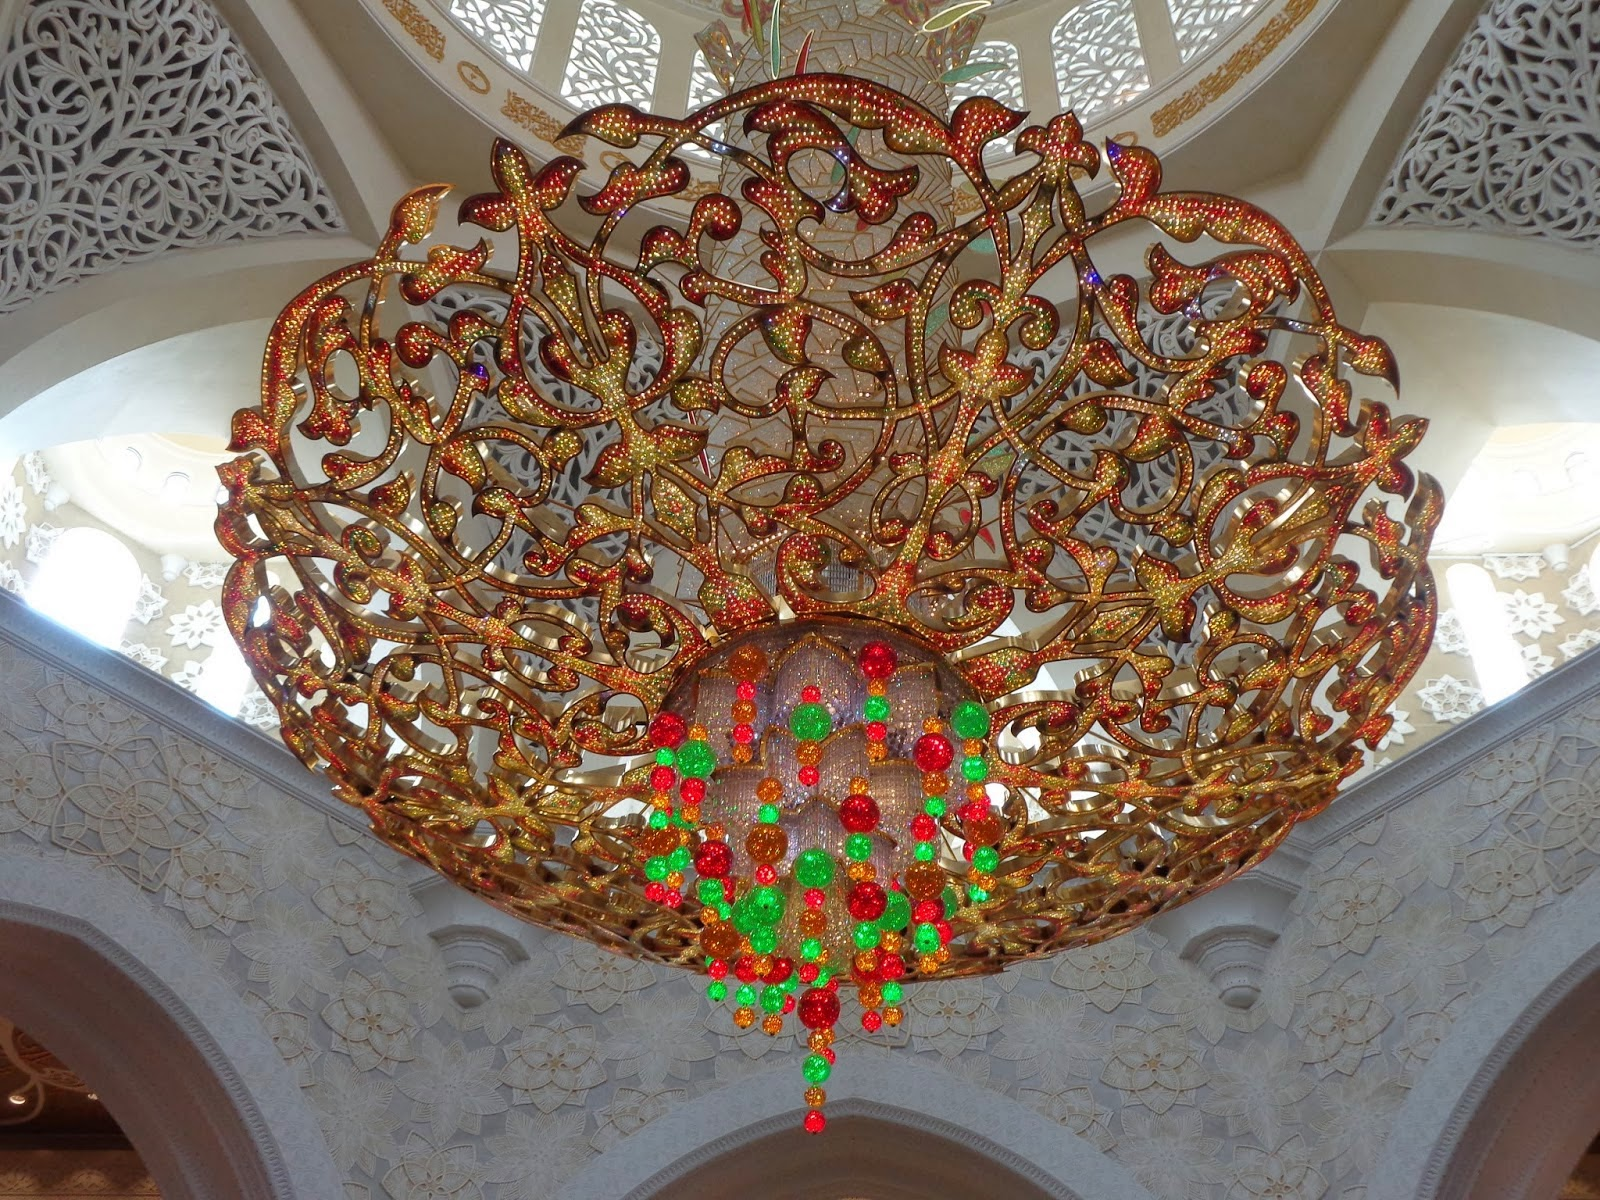 http://msmadge.blogspot.co.uk/2014/01/sheikh-zayed-grand-mosque-in-abu-dhabi.html